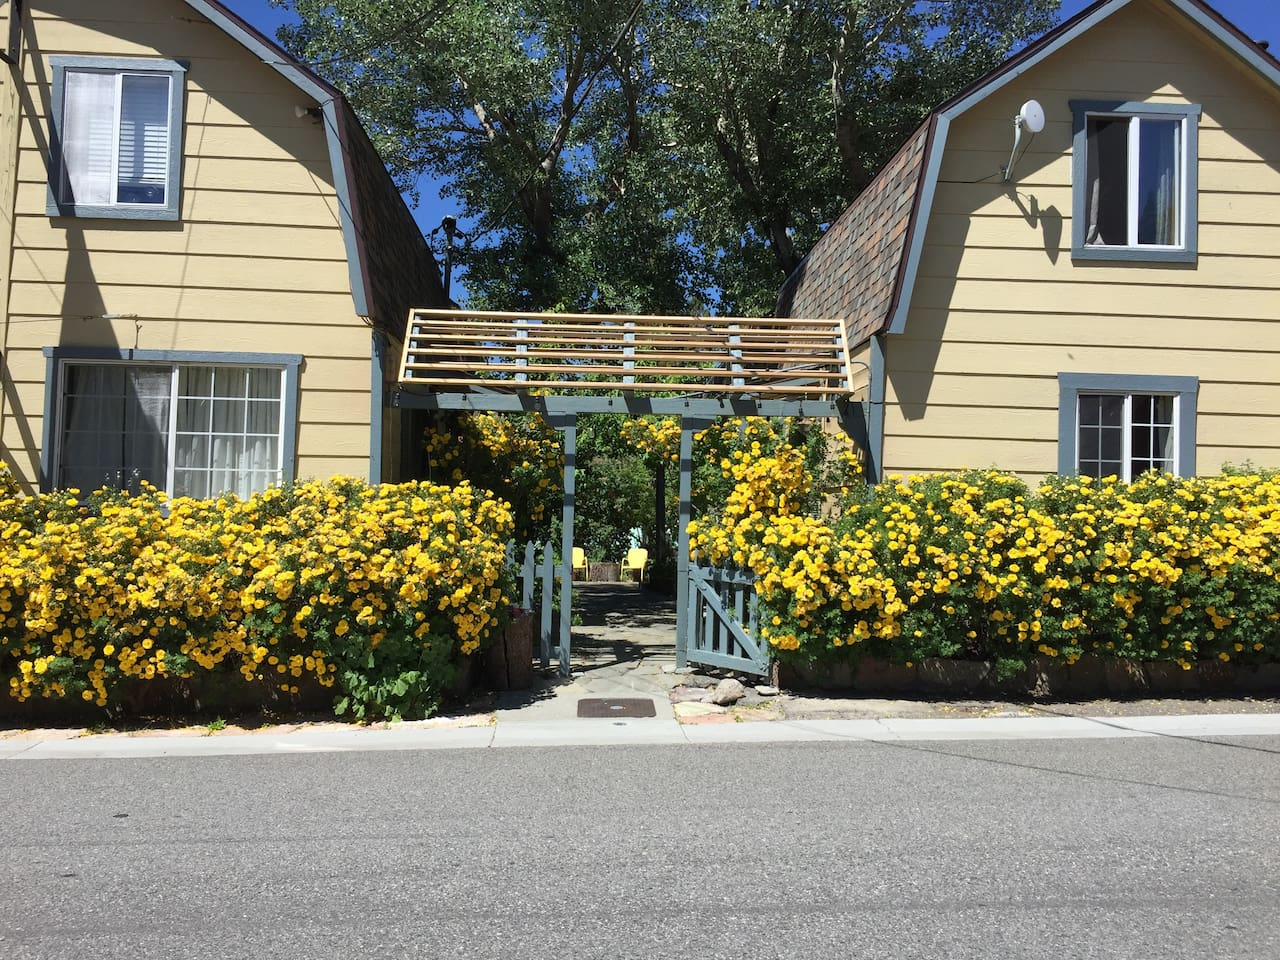 Welcome to The Haven in beautiful June Lake, CA! This is Cabin #2, two story with bedrooms upstairs and living room, kitchen and bathroom downstairs.  Includes a wood burning stove.